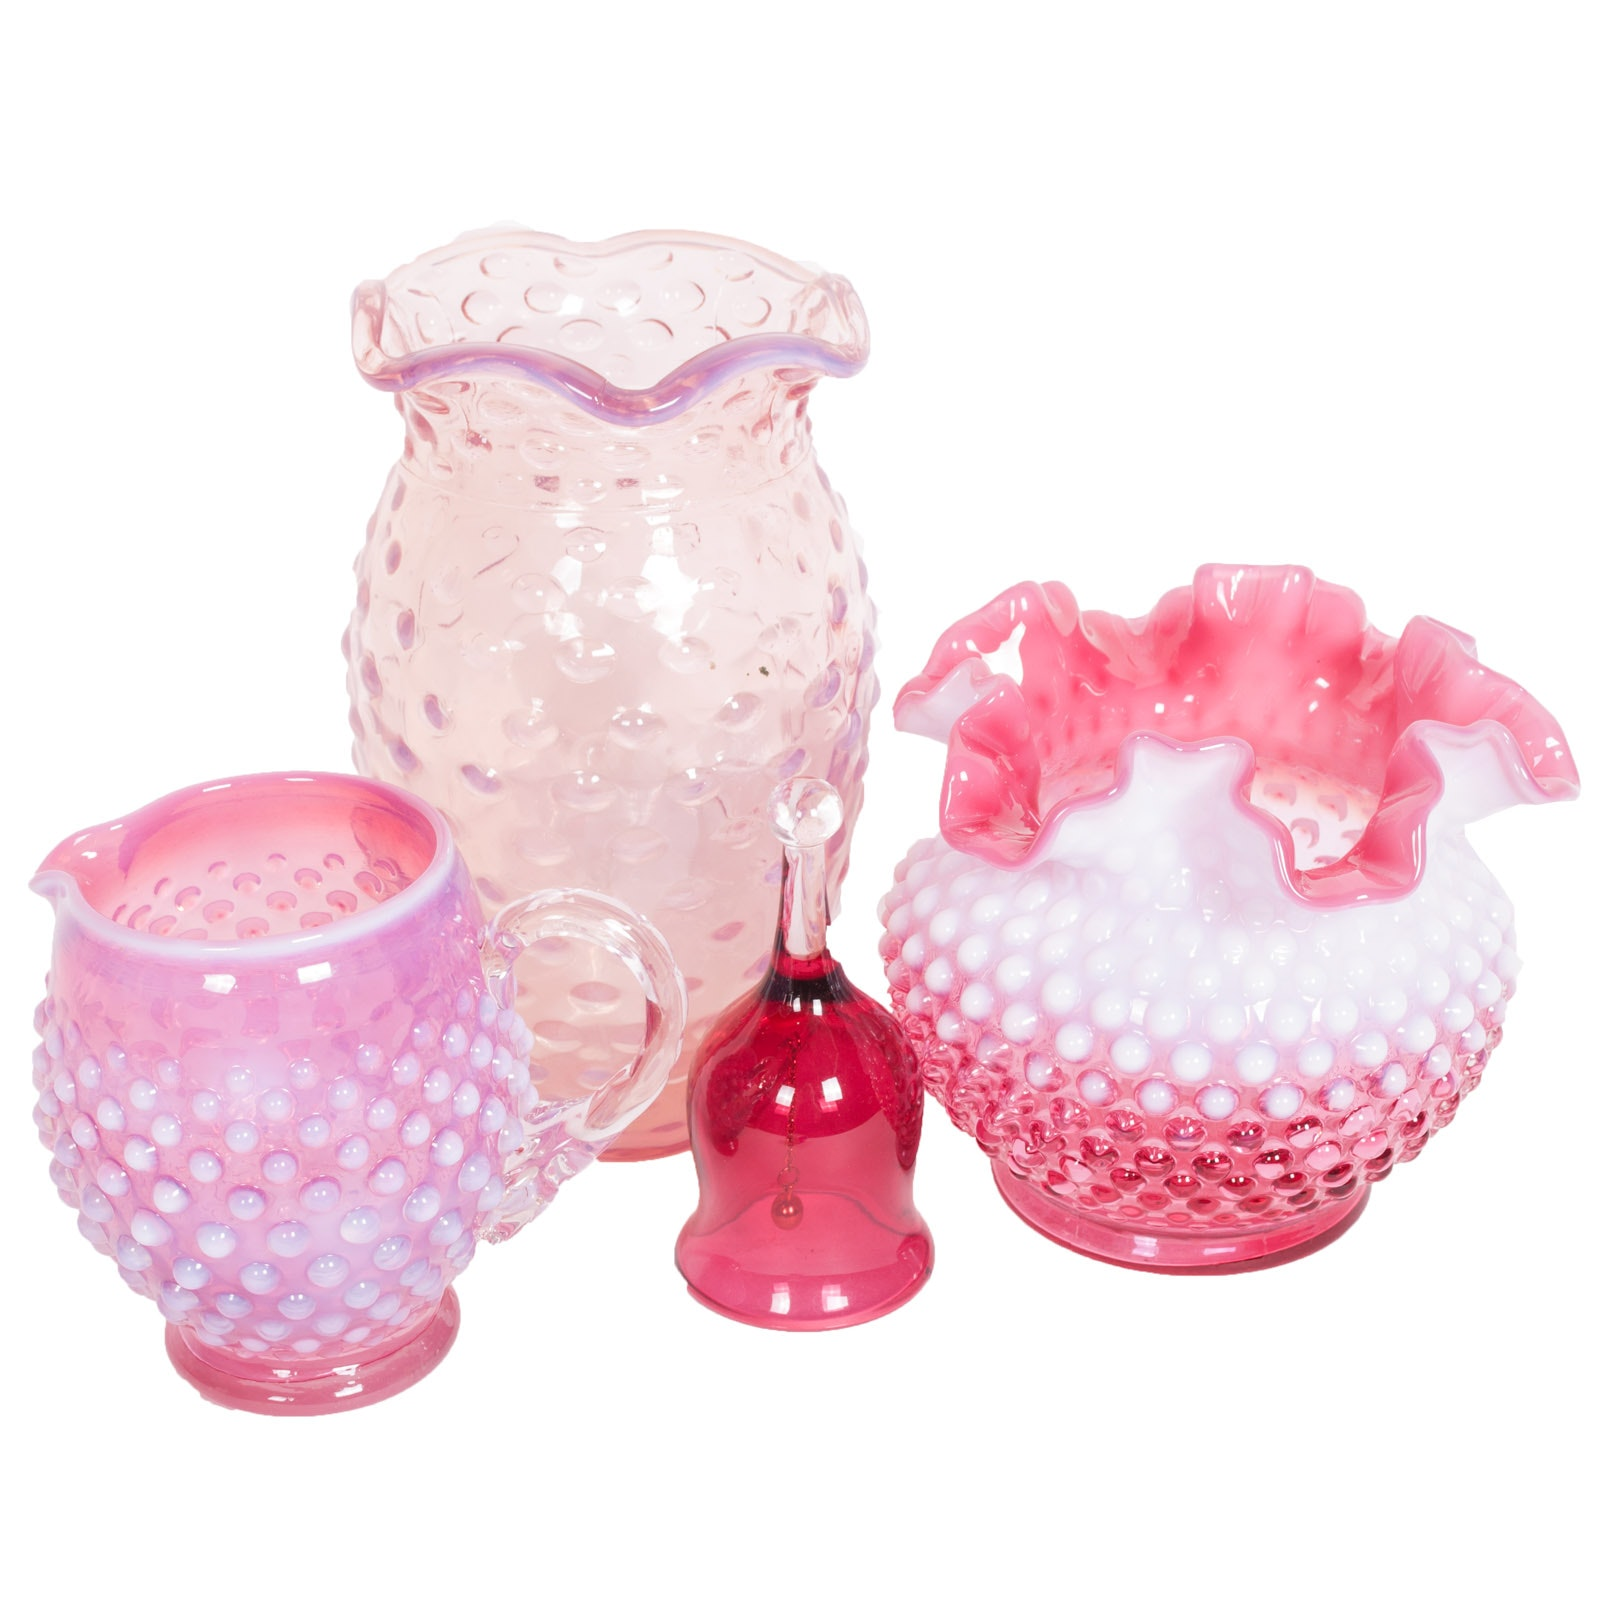 Cranberry and Pink Hobnail Glass Tableware including Fenton